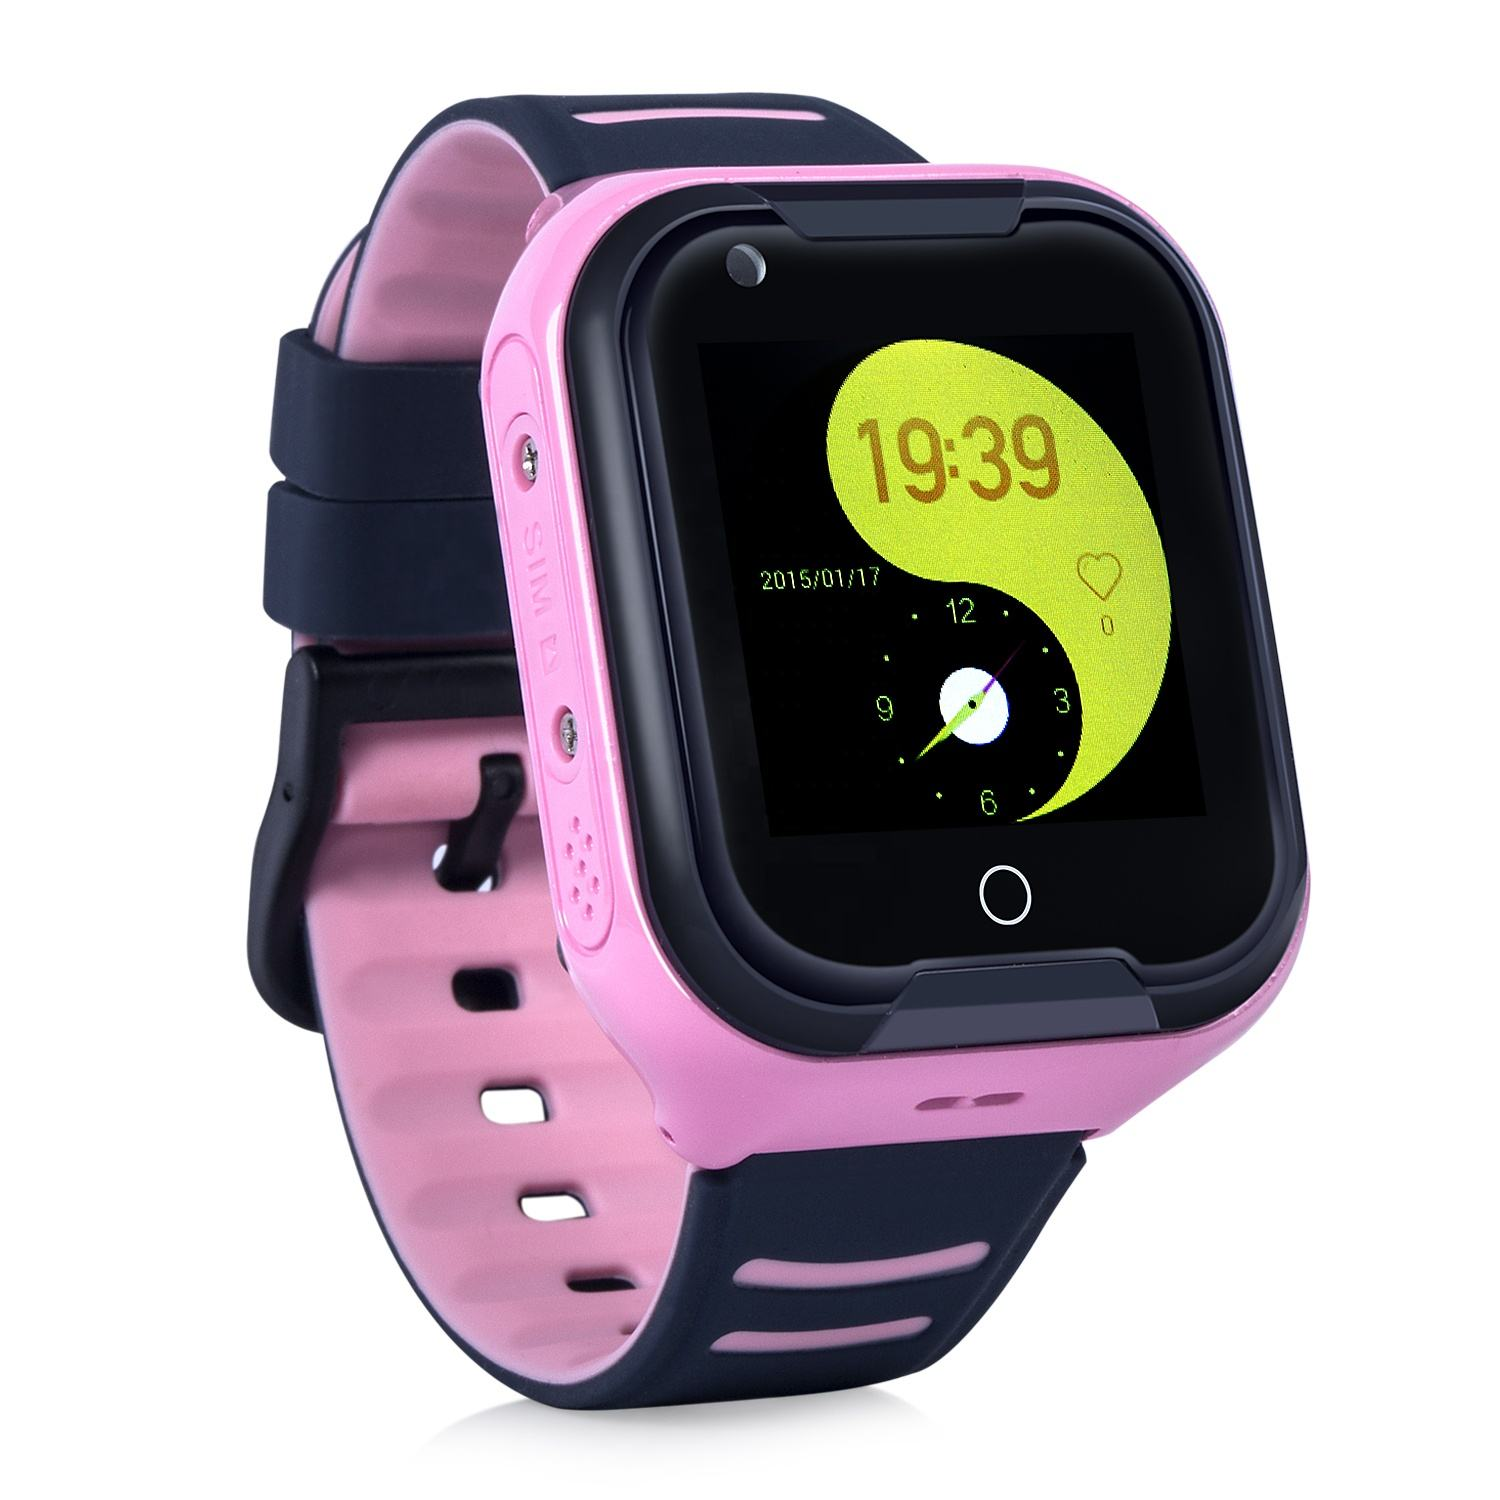 Wonlex 4G Video Calling GPS Smart Watch For Kids